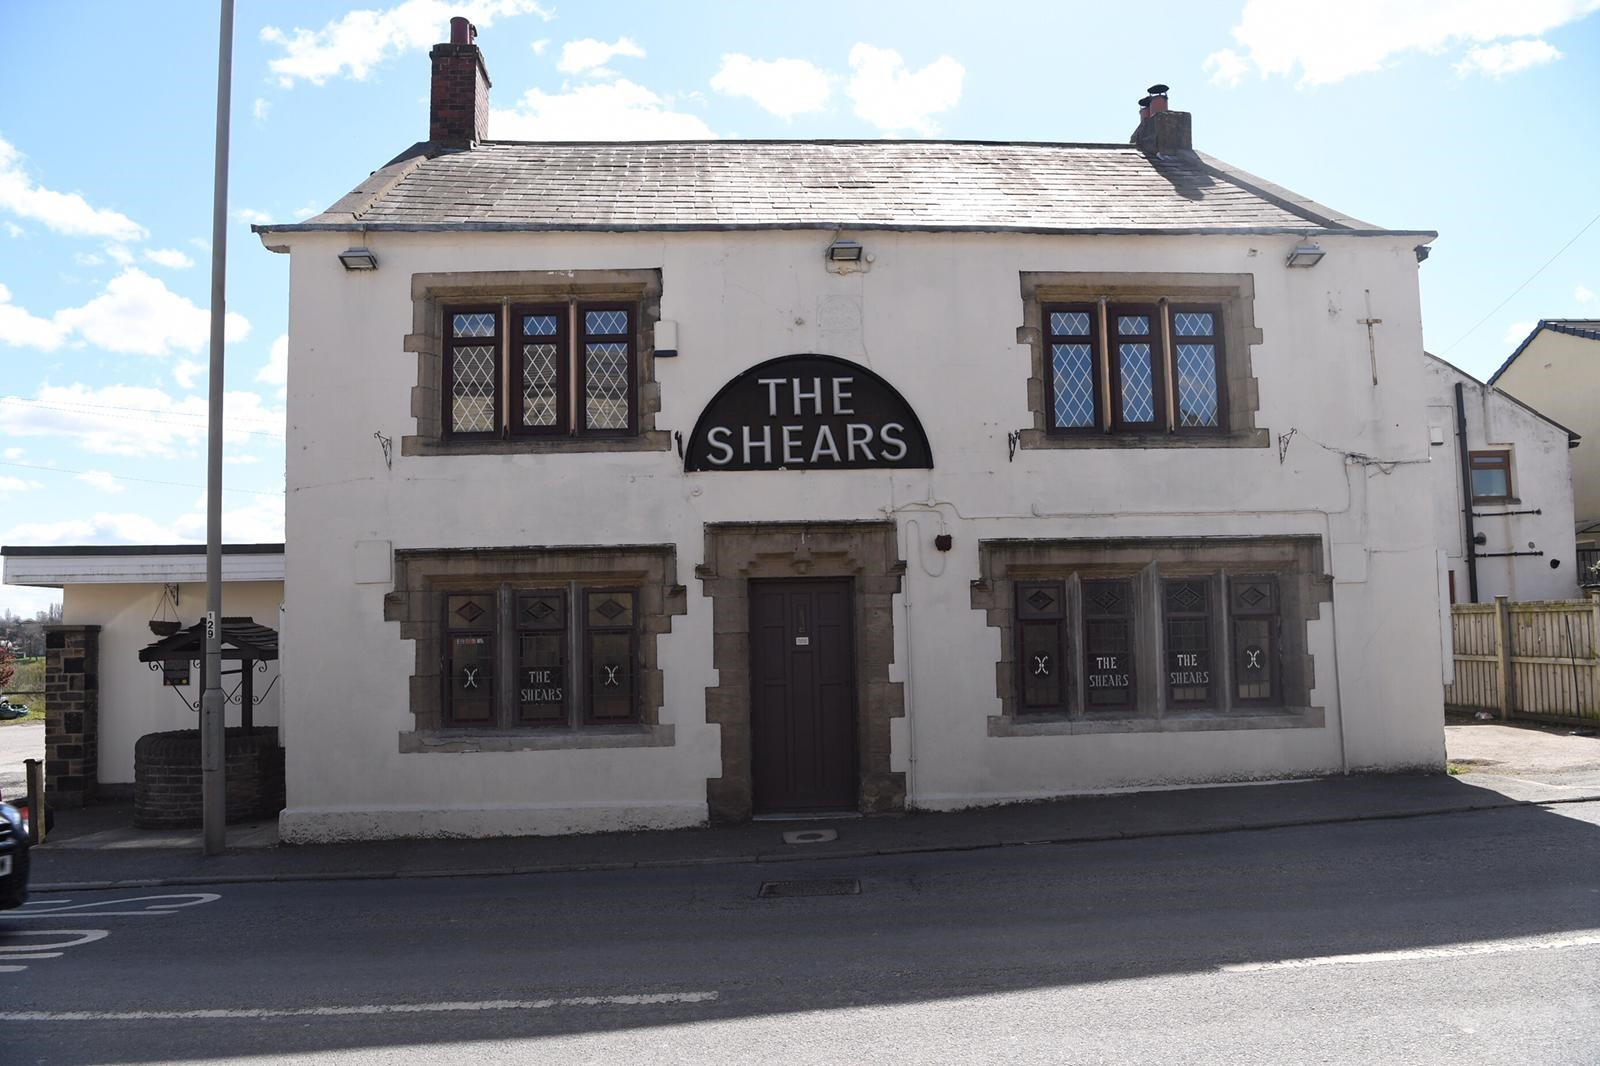 'Important piece of history' saved as application to demolish pub with Luddite links is refused